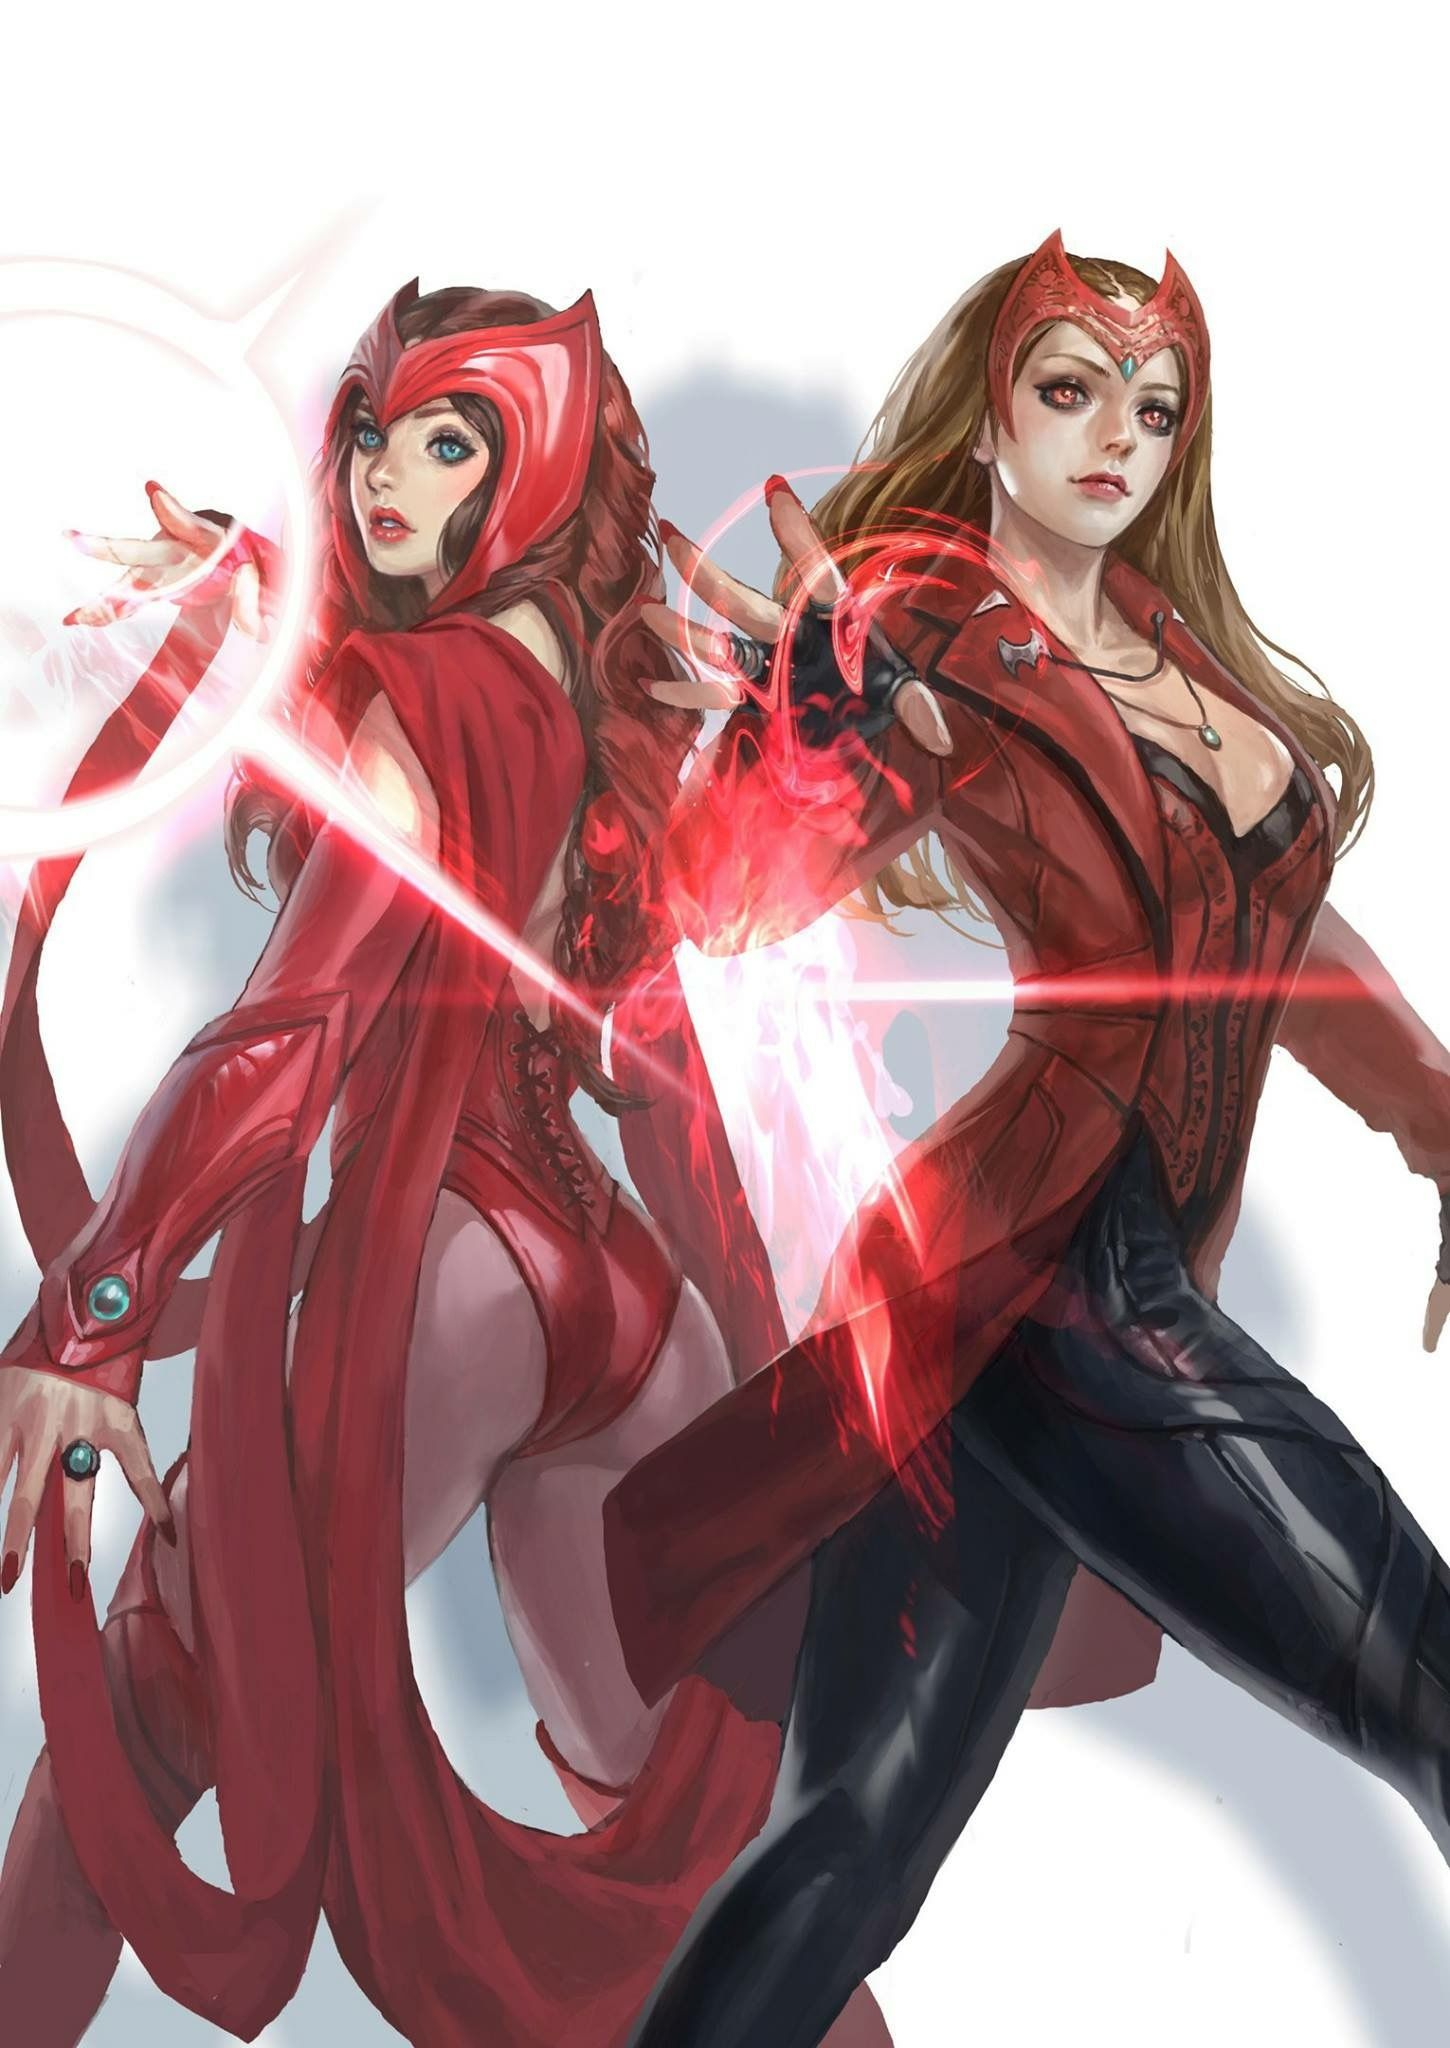 marvel s slice of chaos magic a scarlet witch essential reading guide scarlet witch marvel marvel superheroes marvel girls